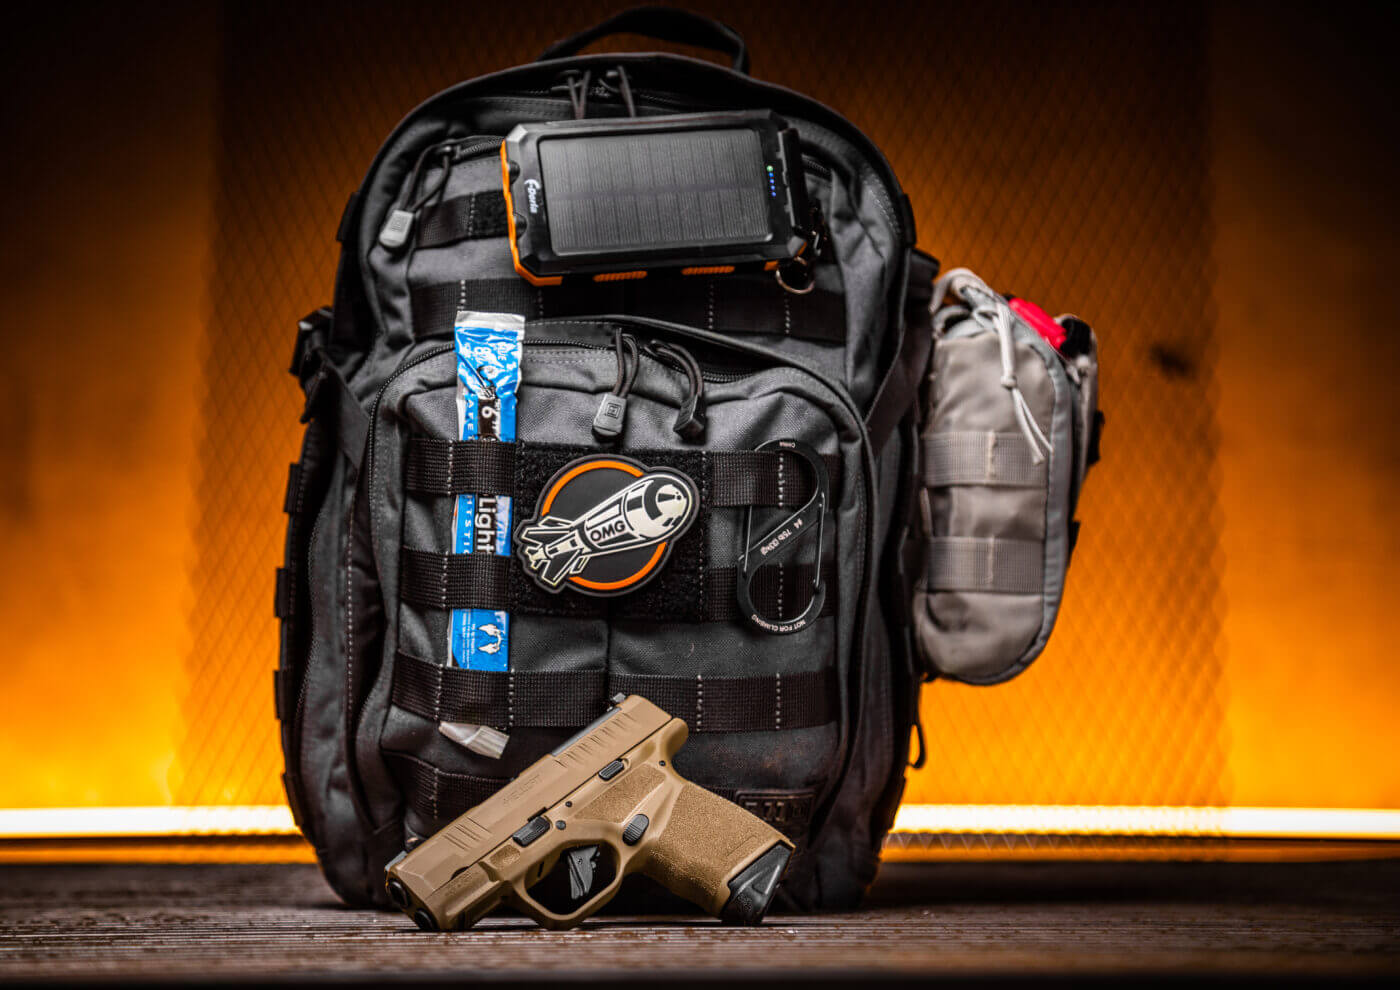 5.11 Tactical RUSH Pack with Hellcat pistol